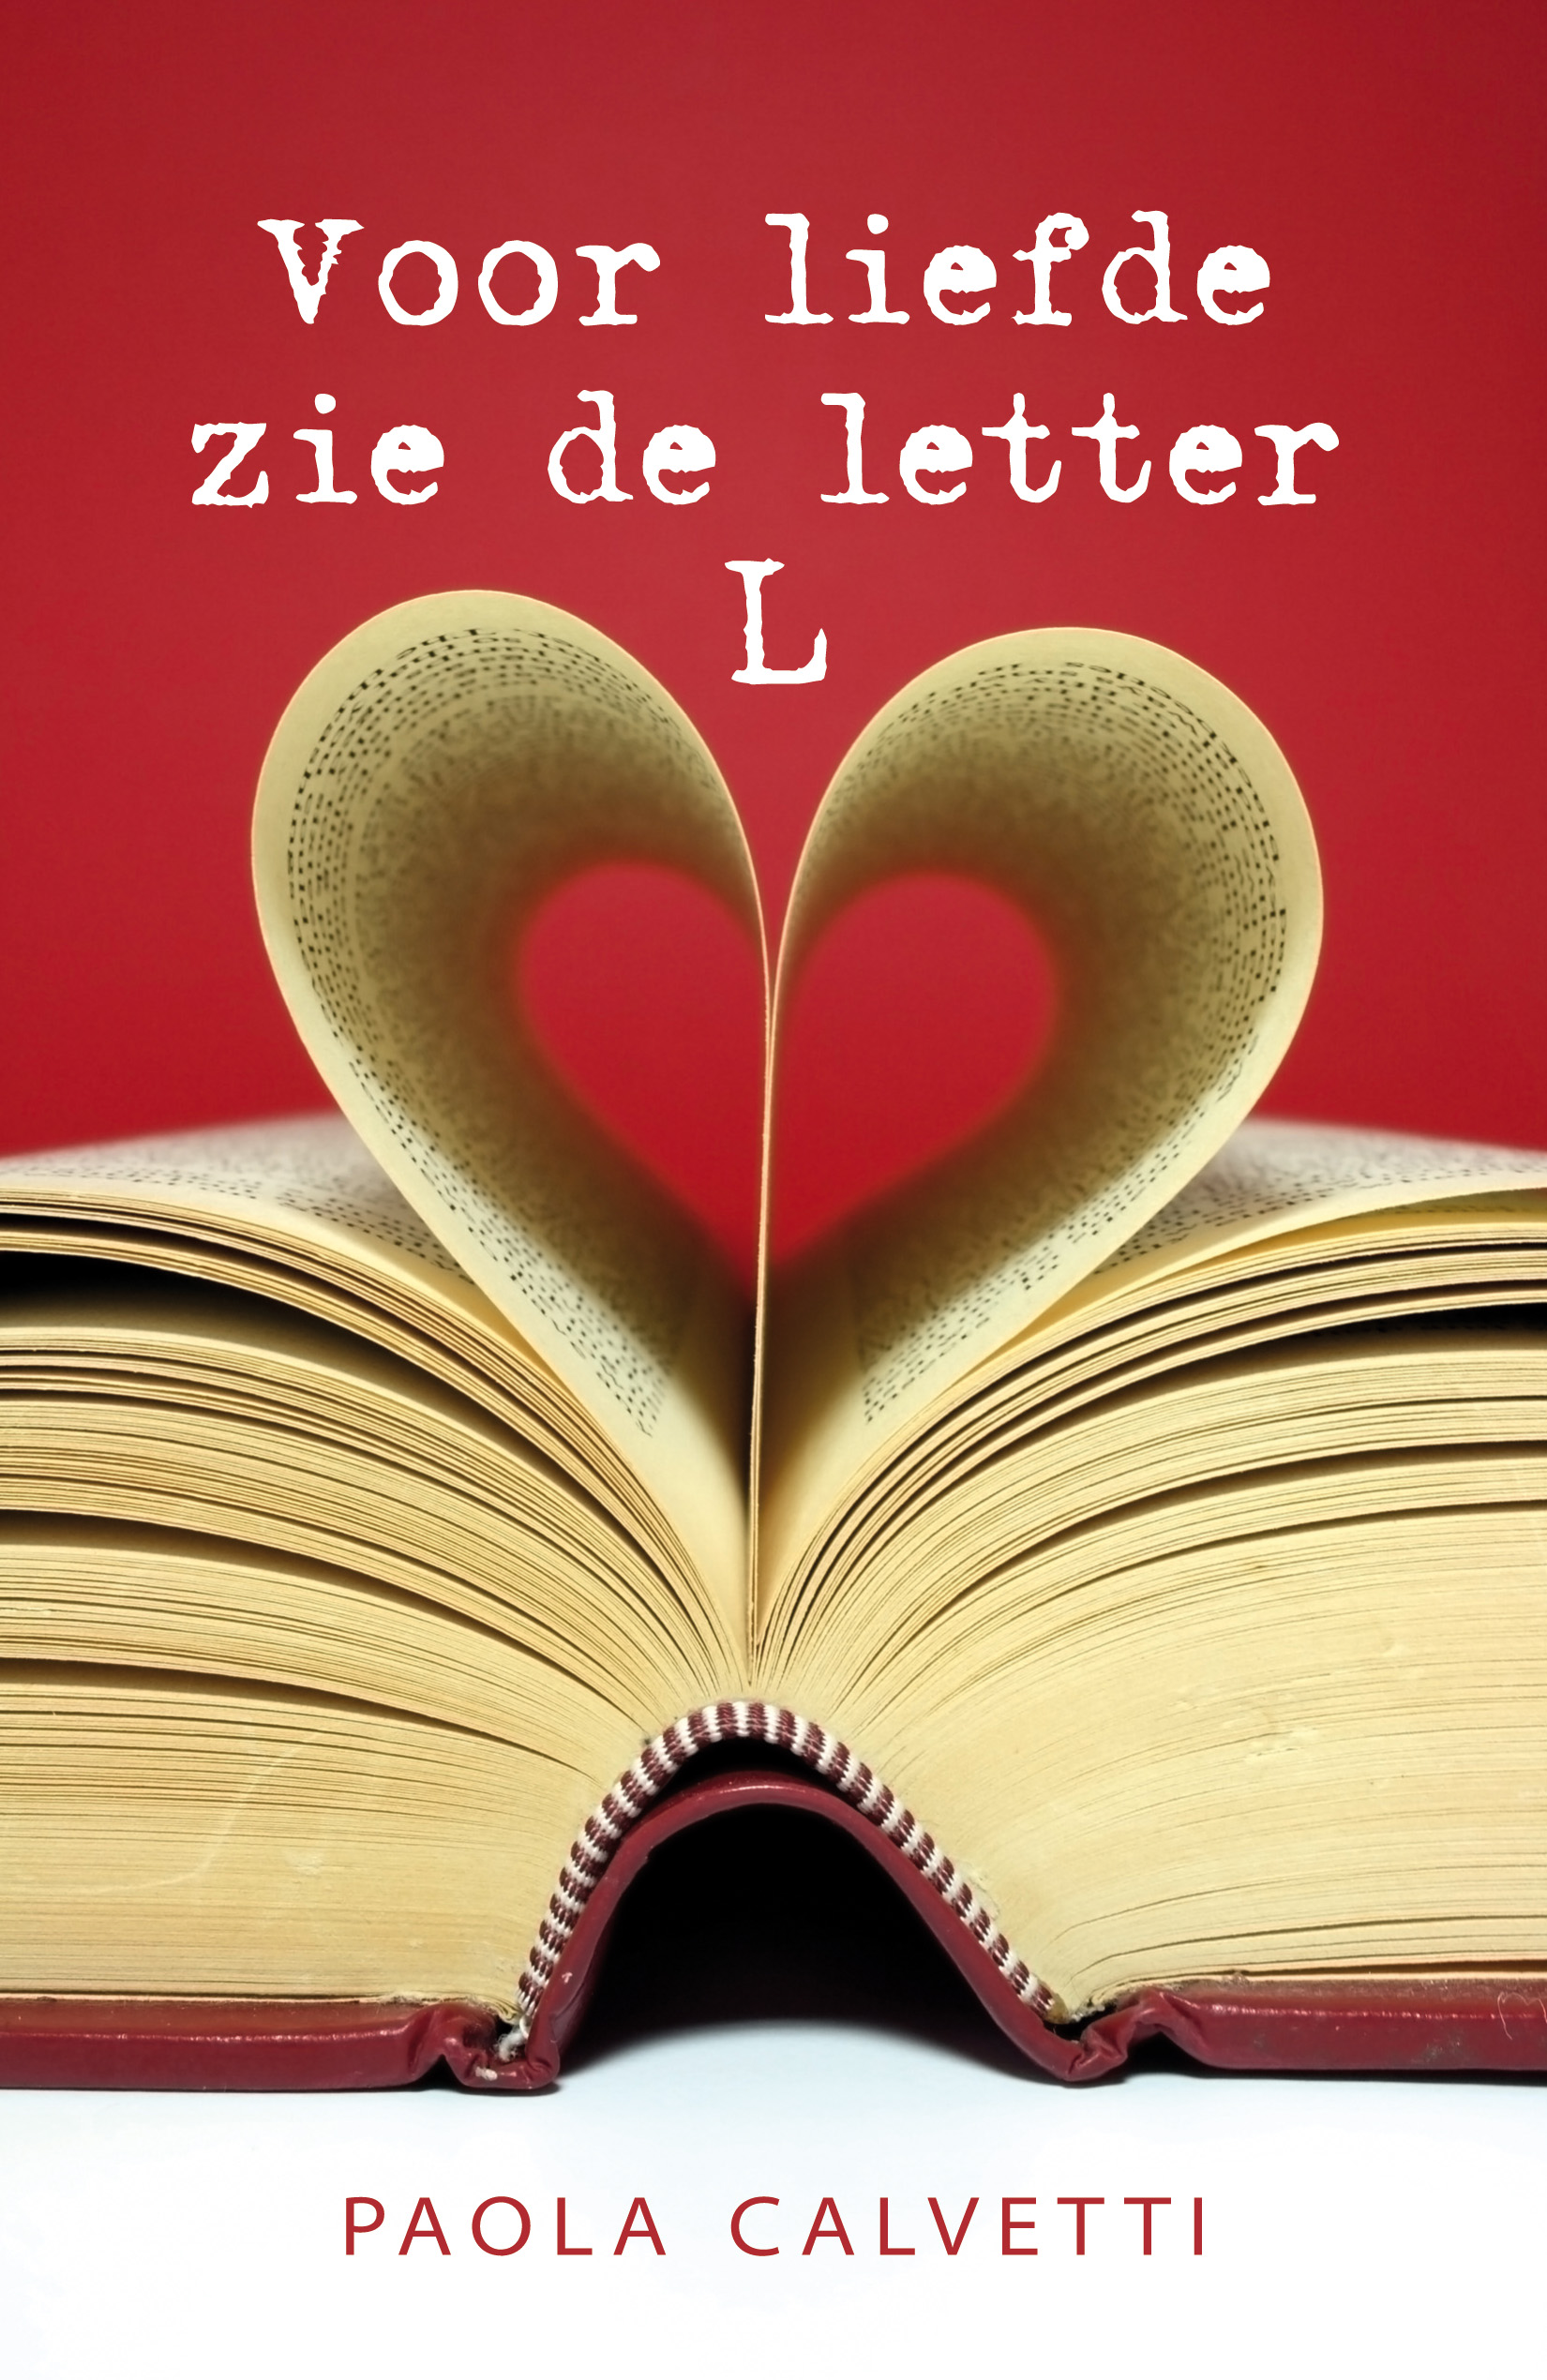 voor-liefde-zie-de-letter-l.jpg